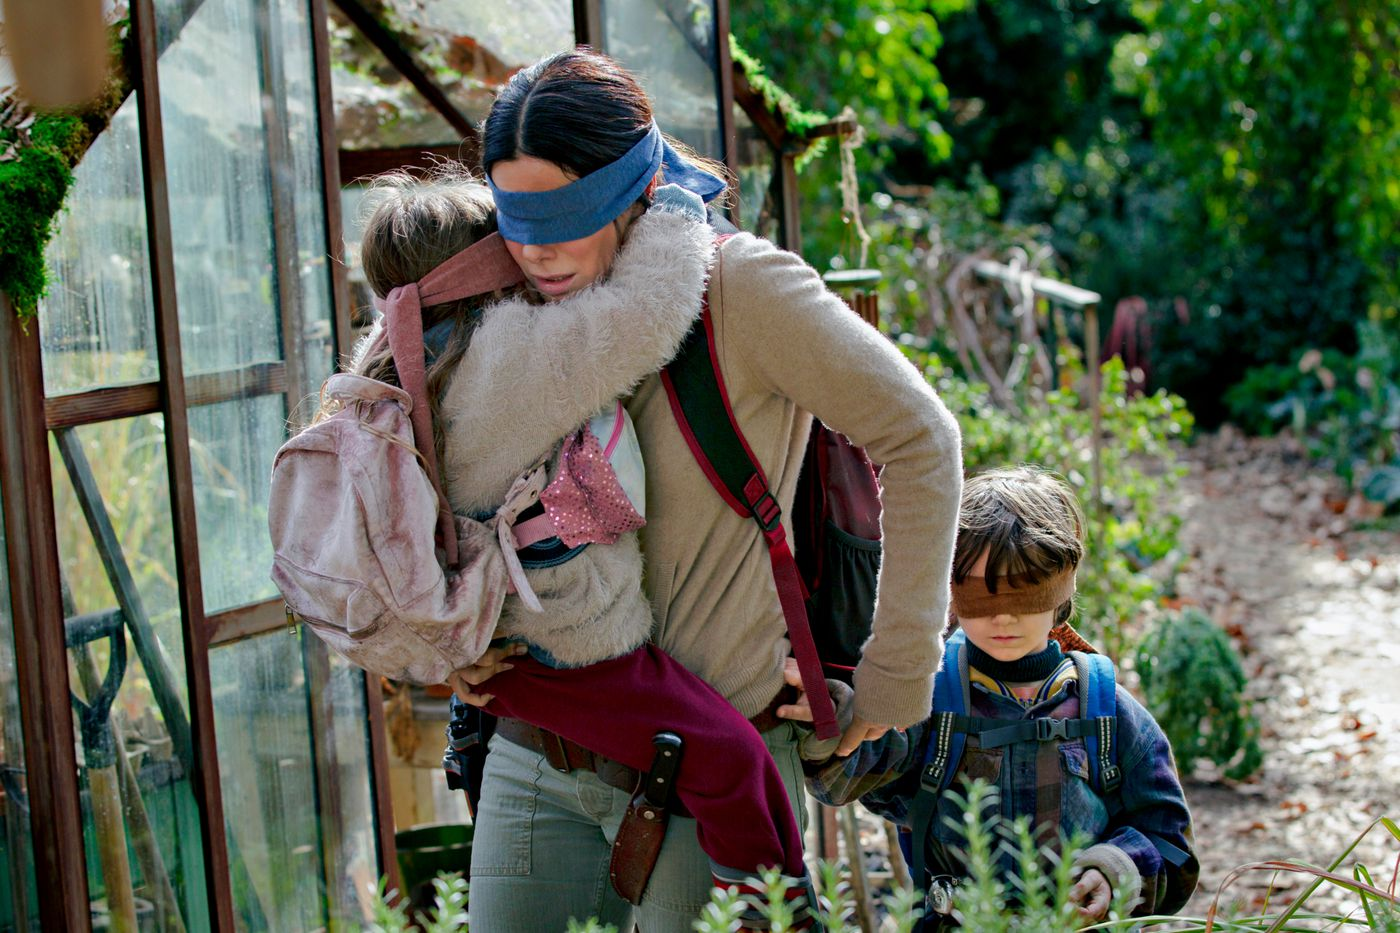 Netflix says over 45 million accounts watched Bird Box — here's what that  means - The Verge